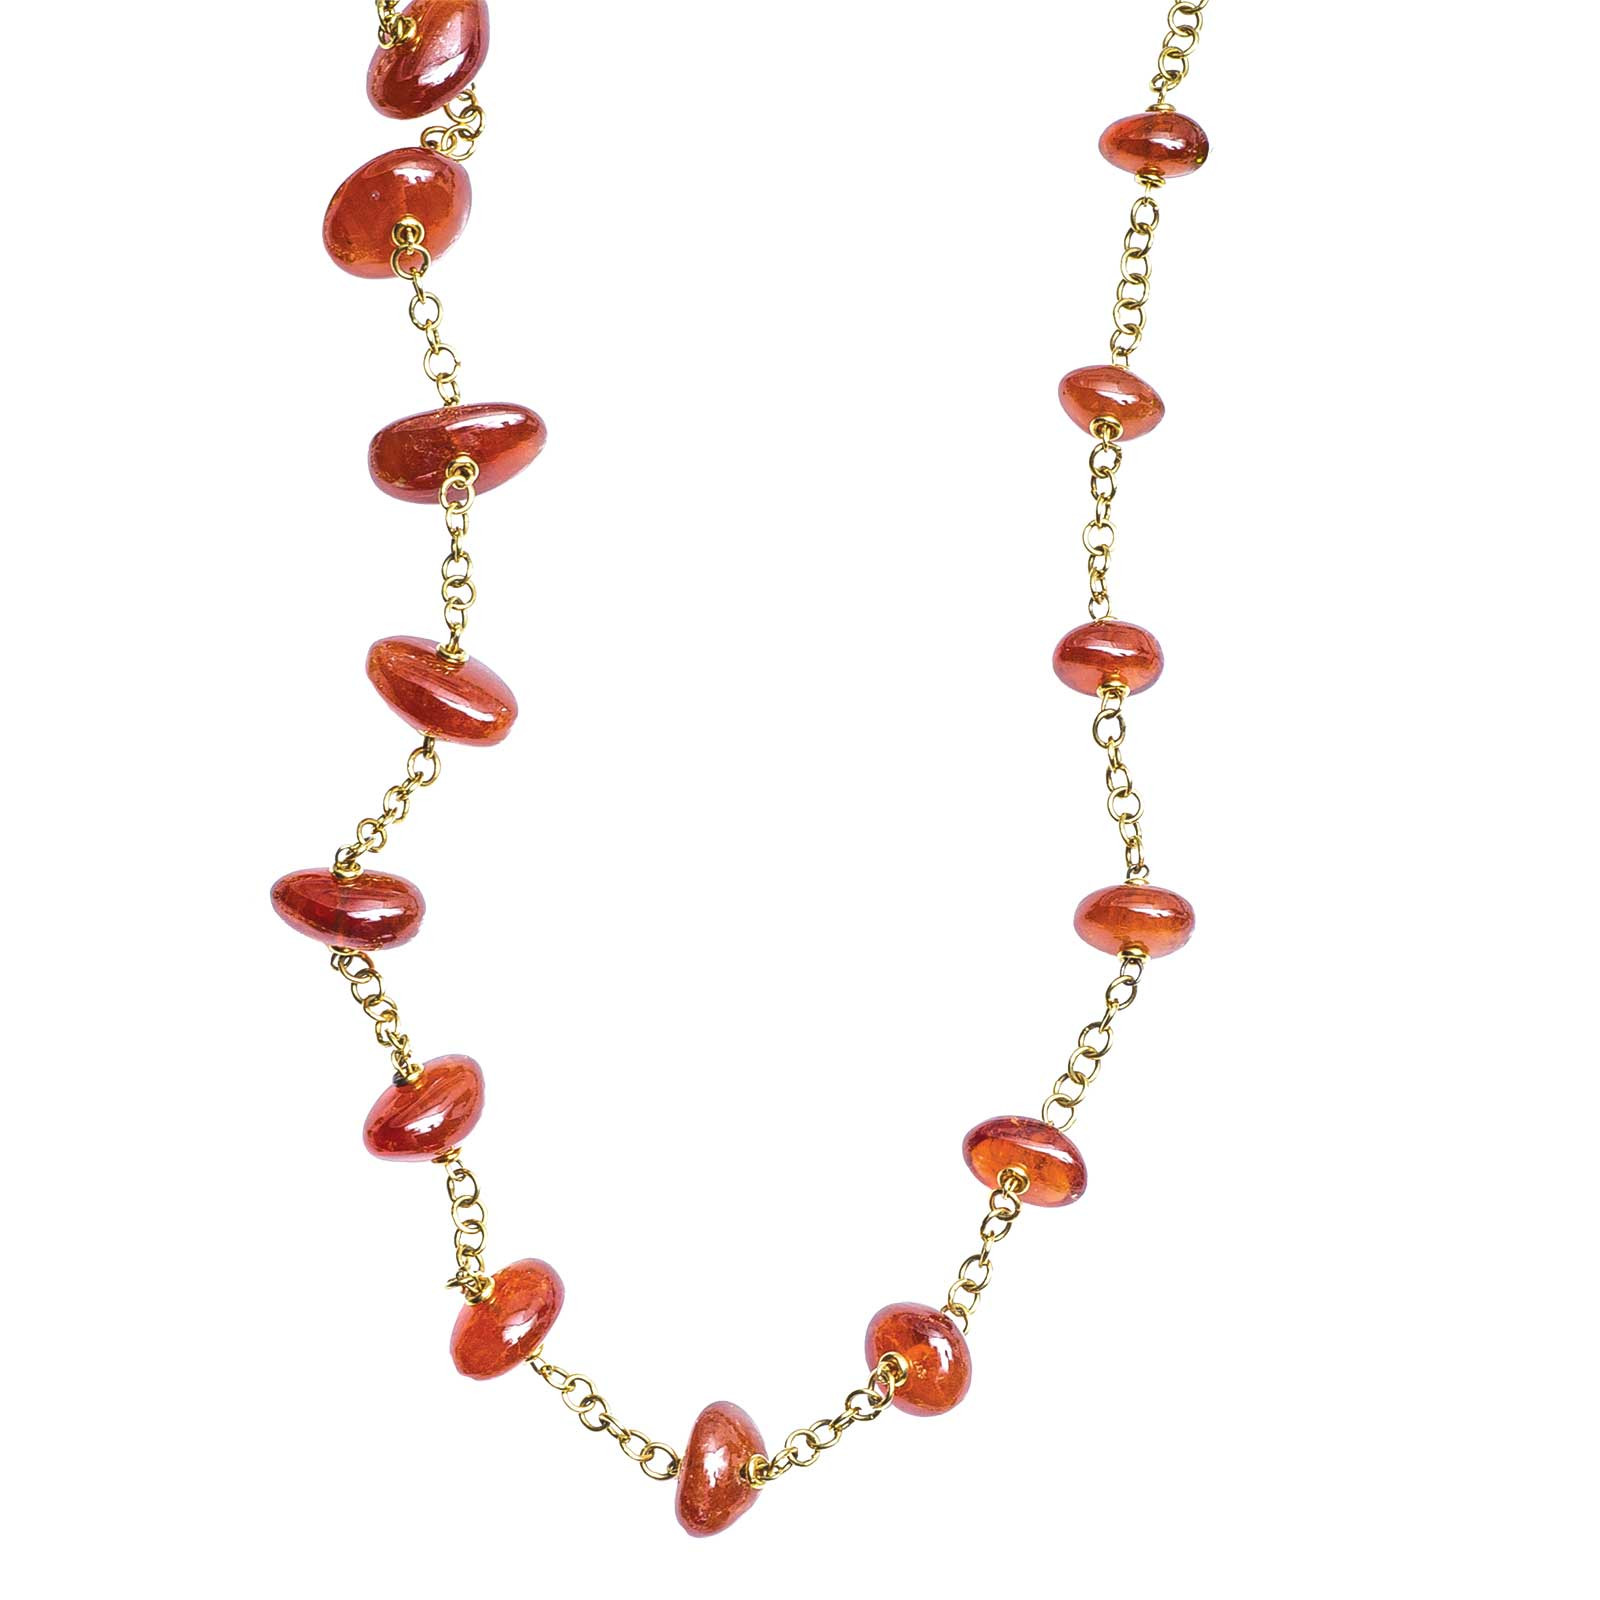 Vintage Spessartite Garnet Bead Necklace